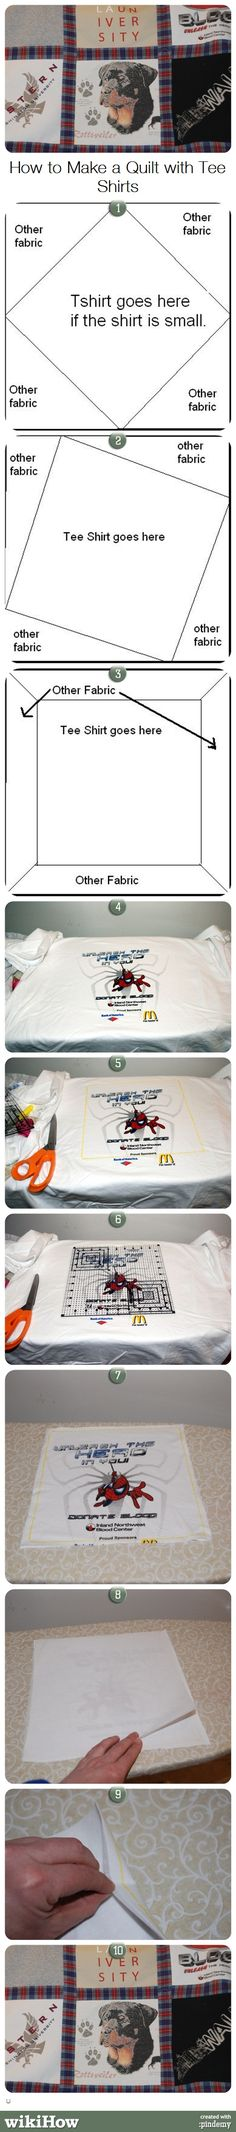 How to Make a Quilt from Tee Shirts